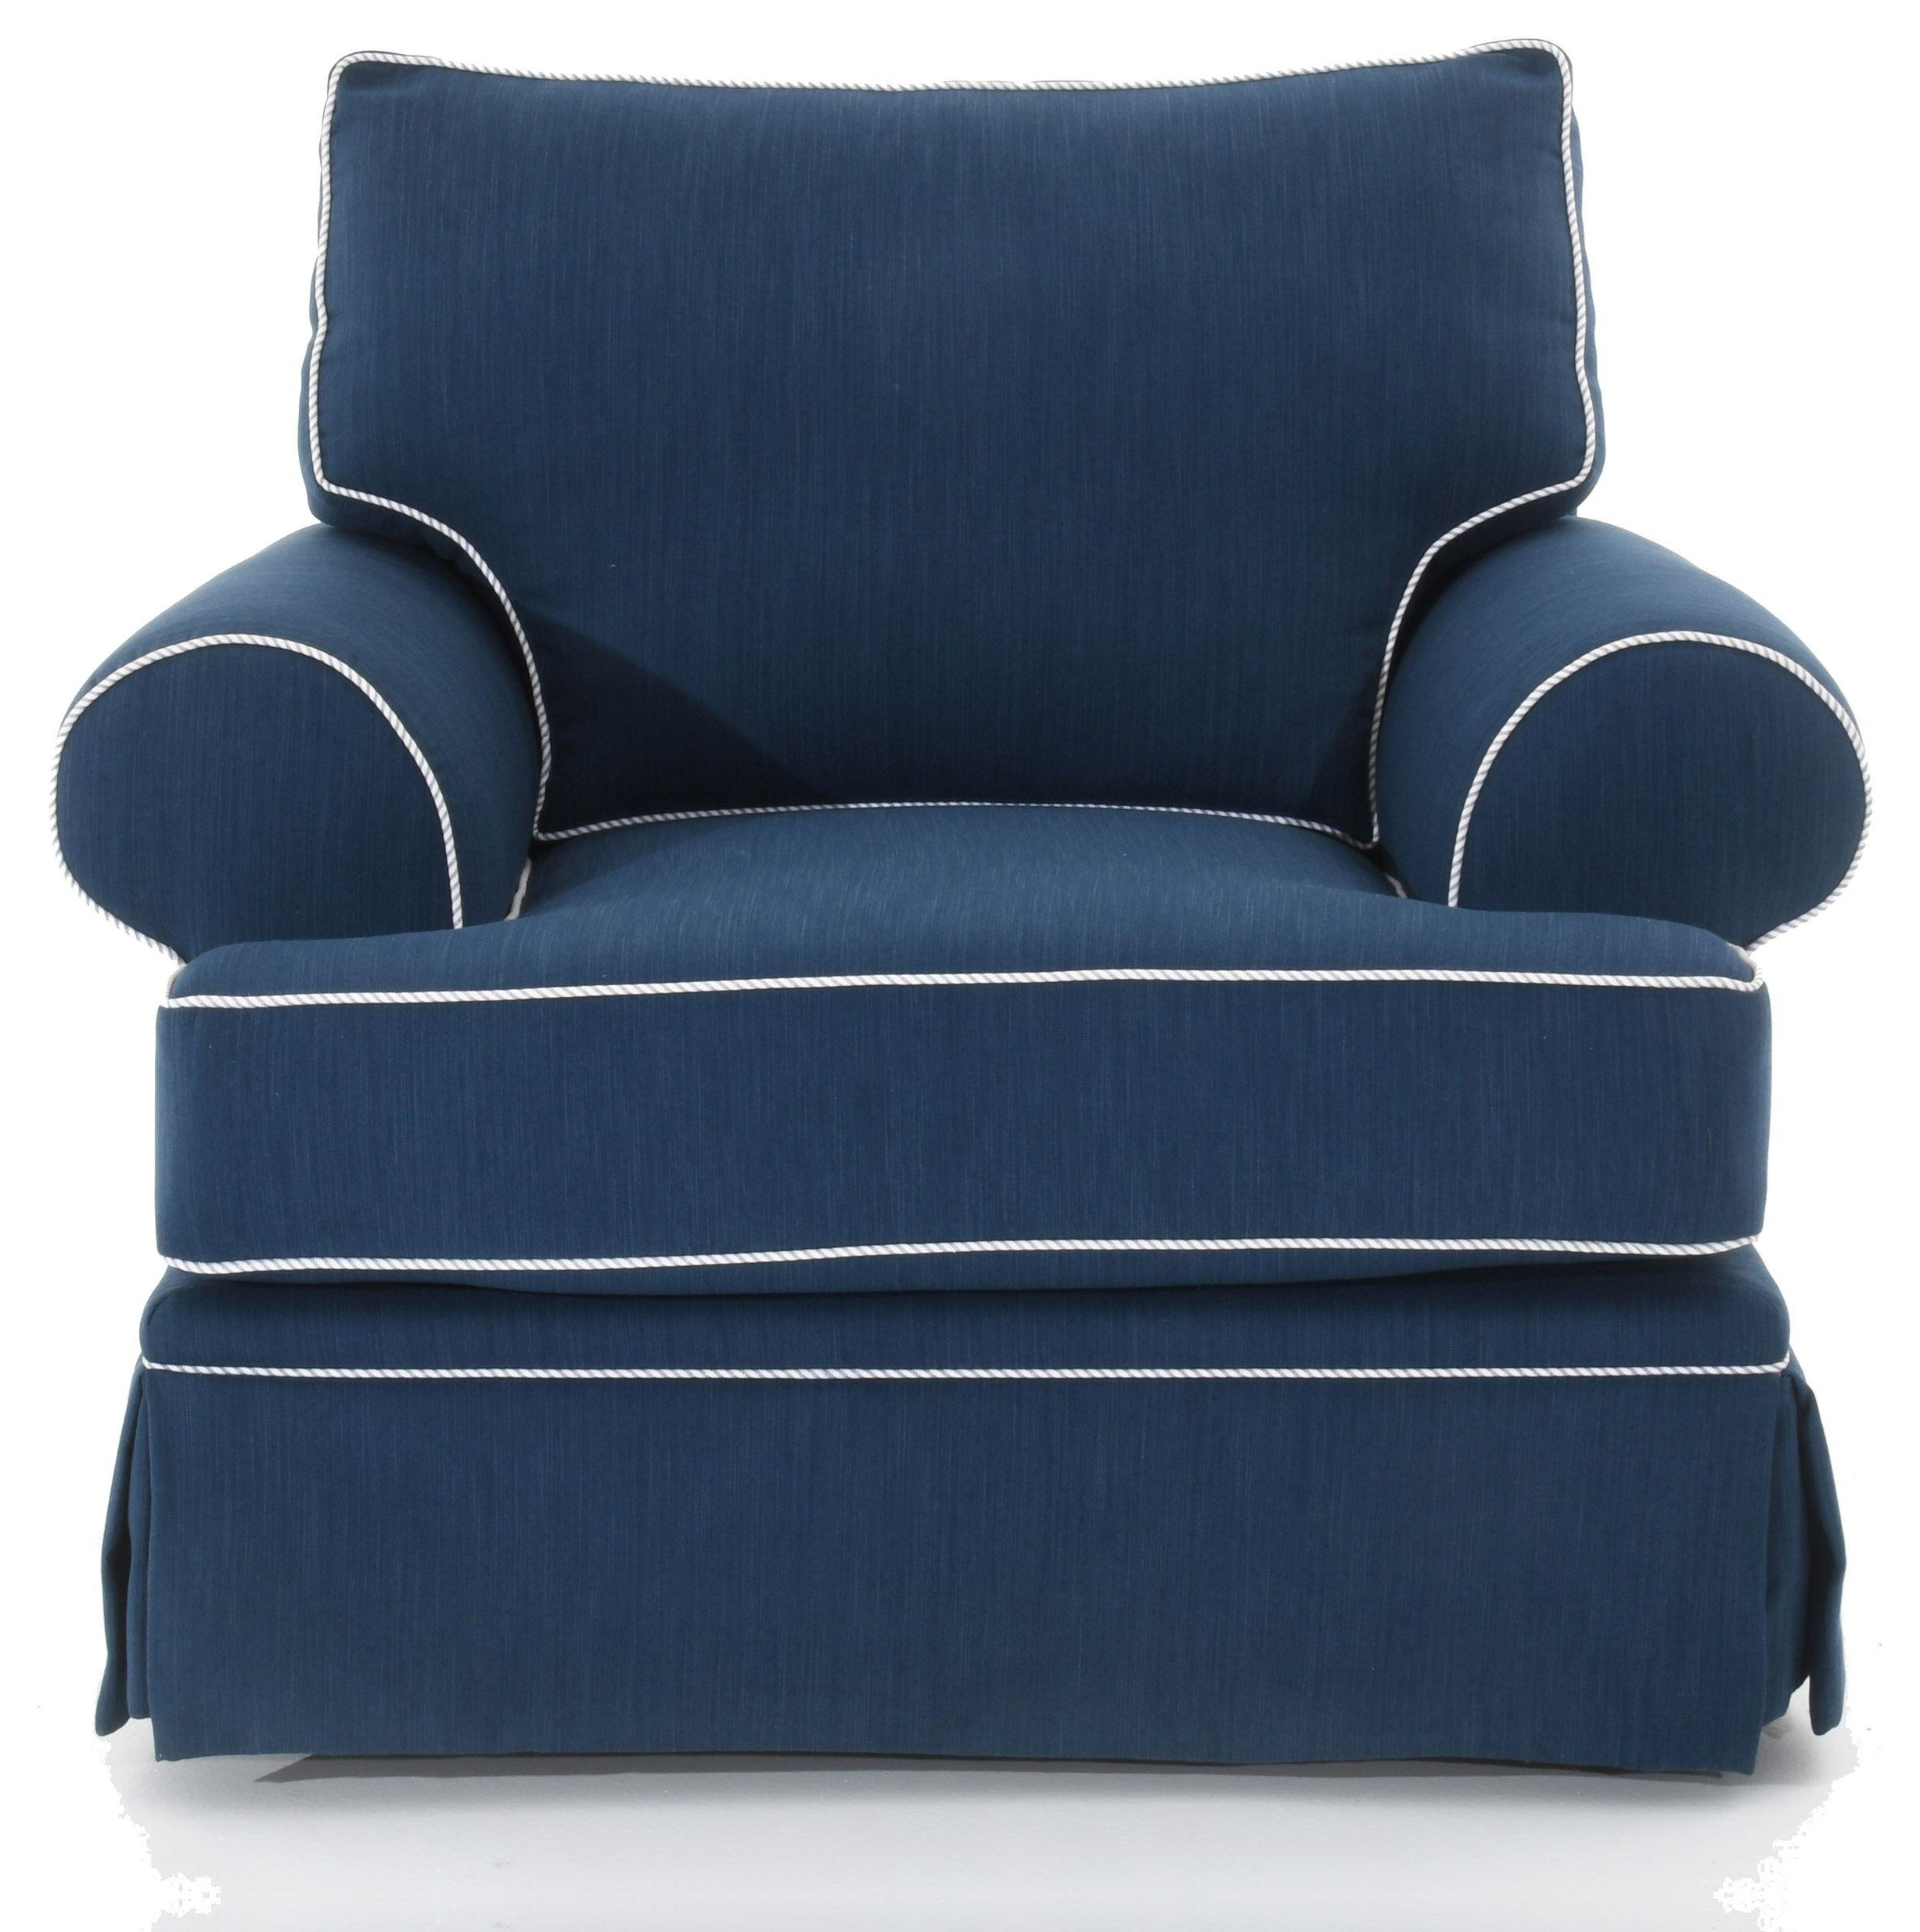 Emily Upholstered Chair by Stone & Leigh Furniture at Baer's Furniture